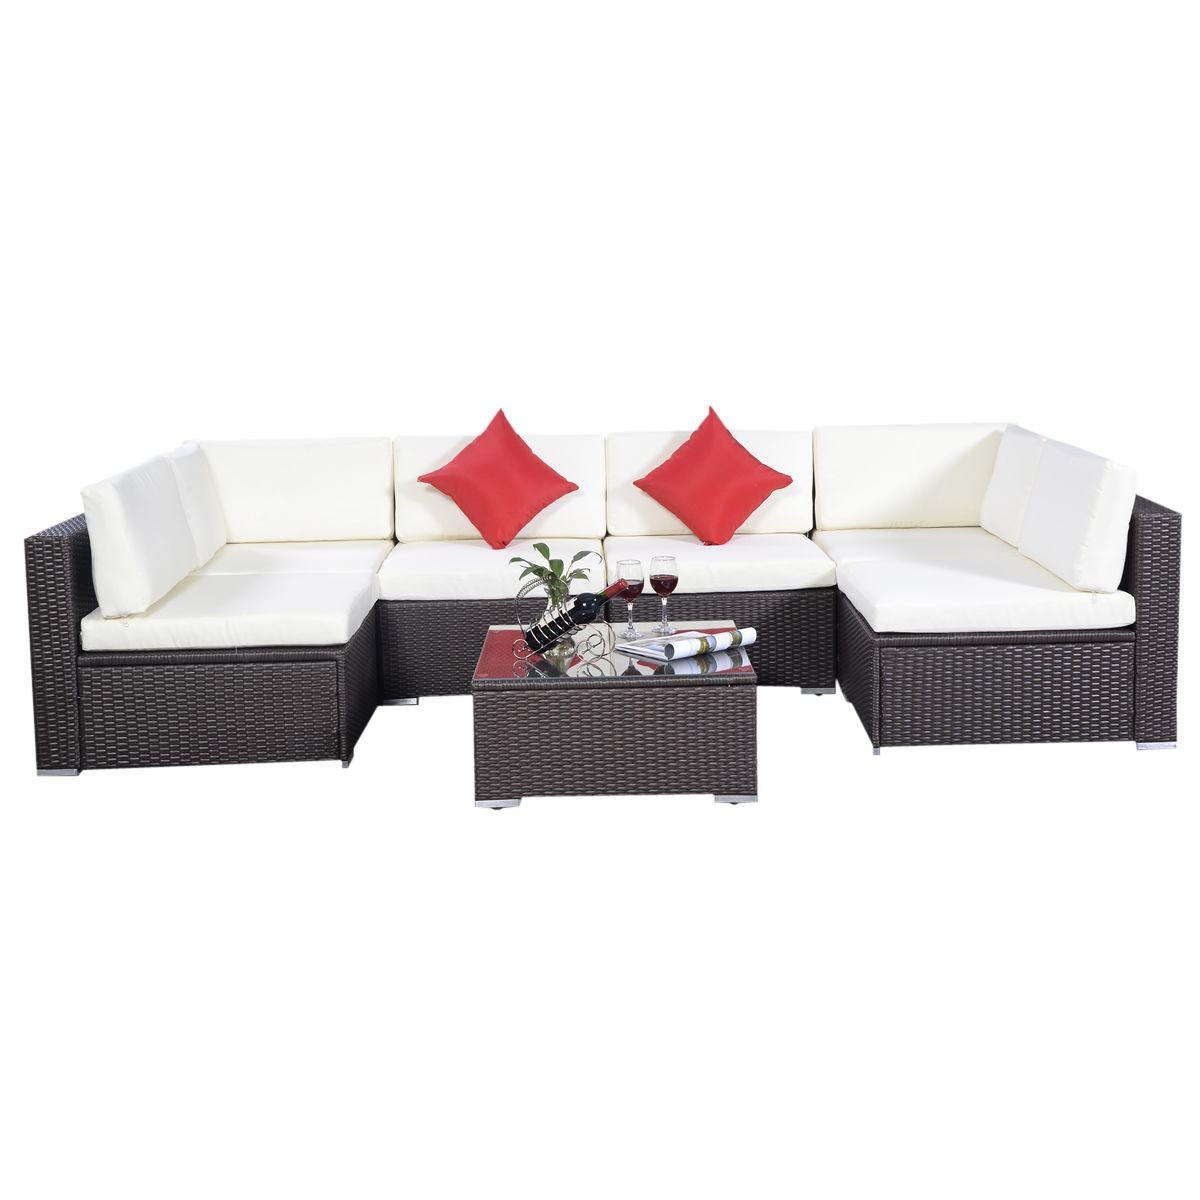 Amazoncom Giantex Outdoor Patio 7PC Furniture Sectional PE